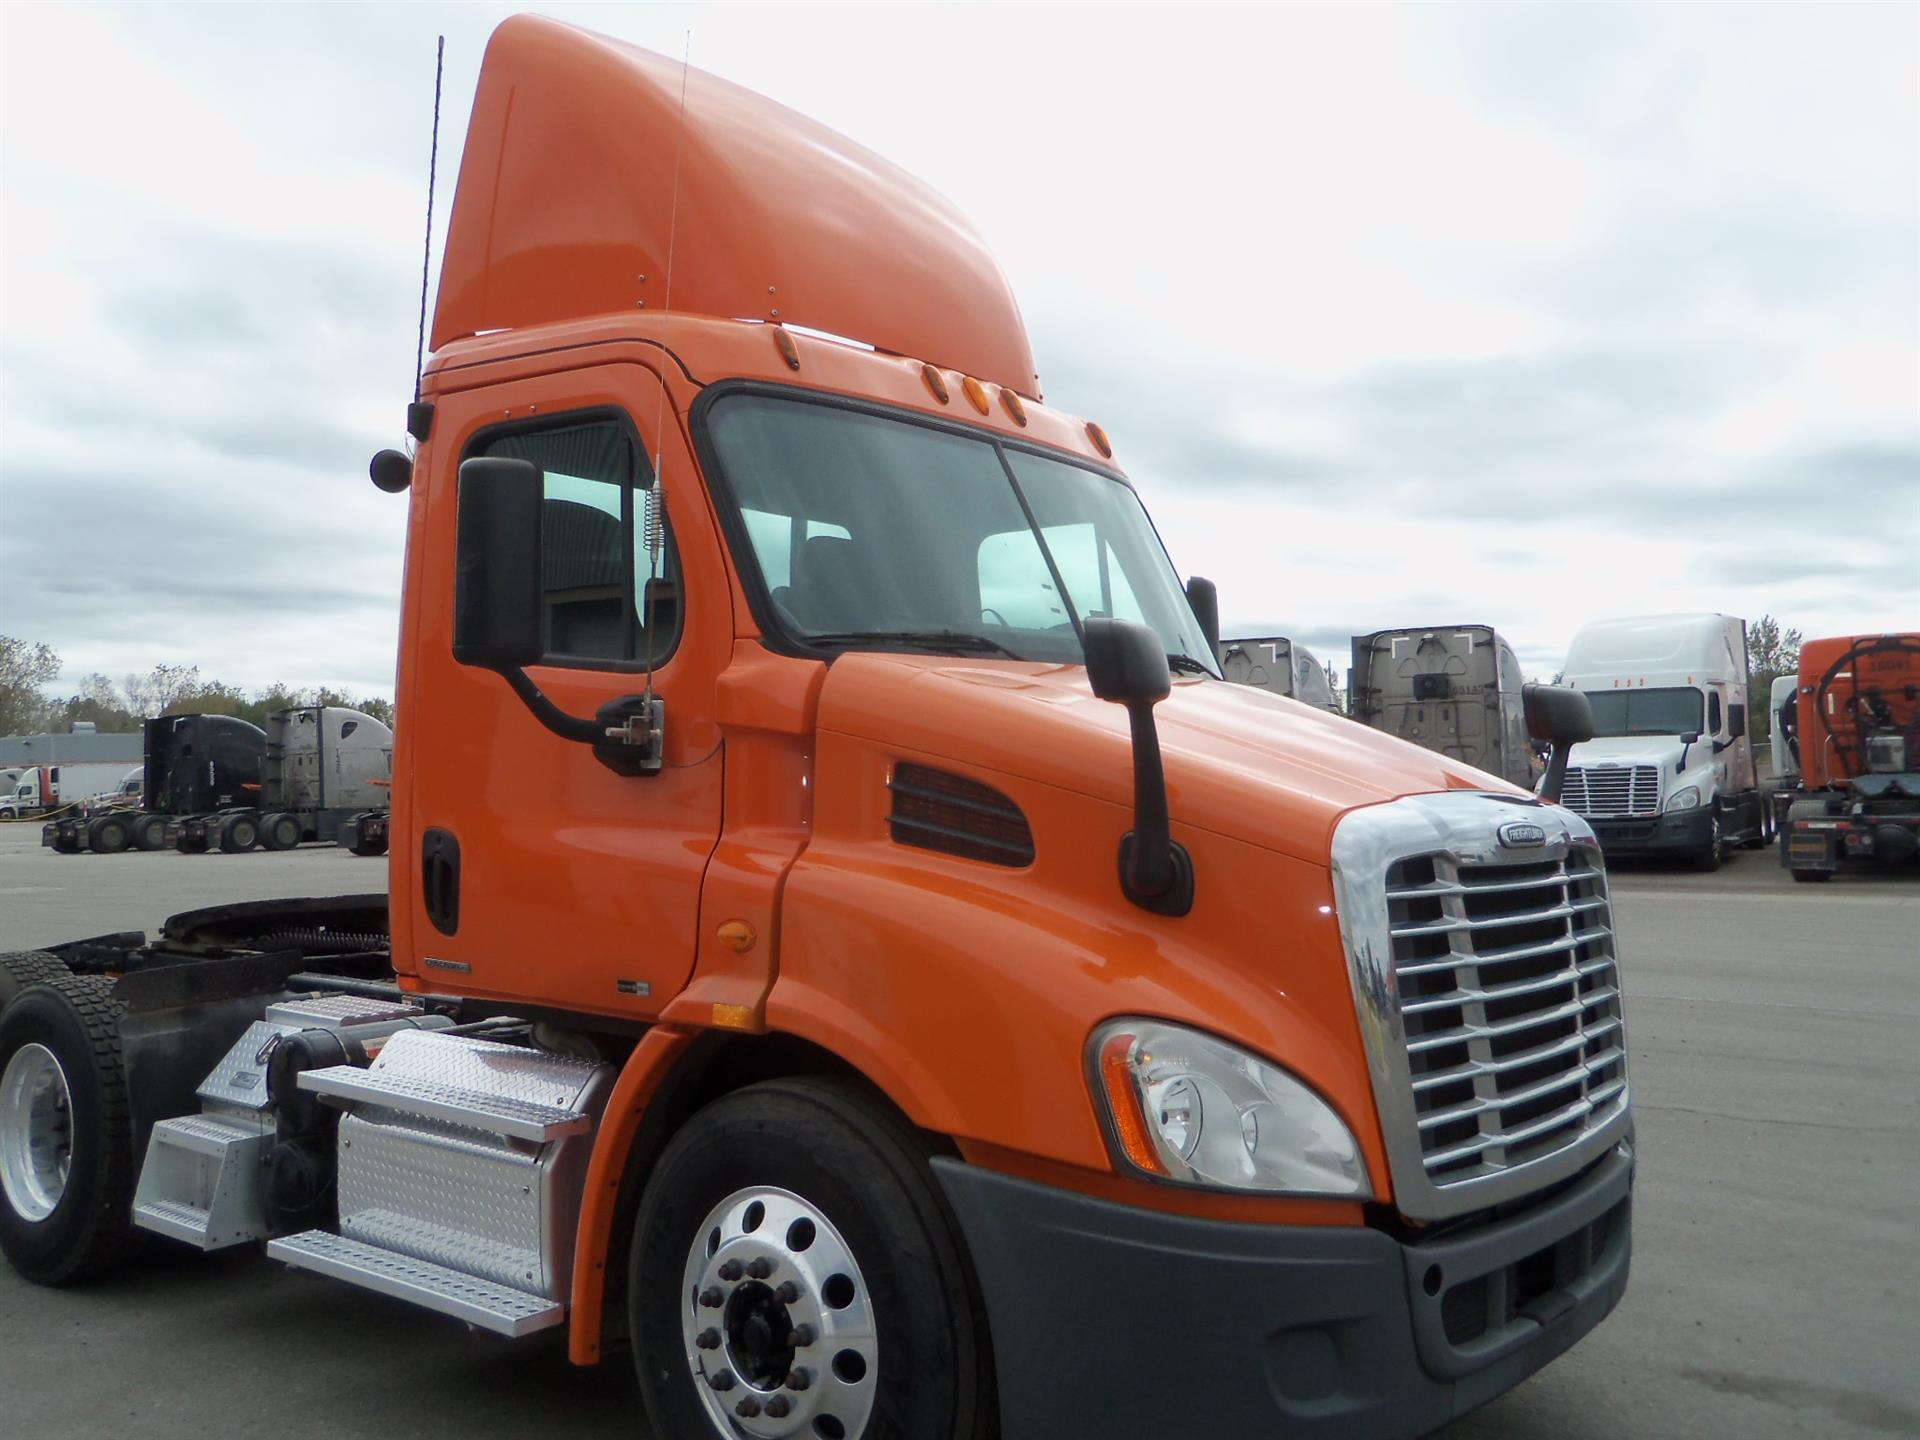 USED 2012 FREIGHTLINER CASCADIA DAYCAB TRUCK #83377